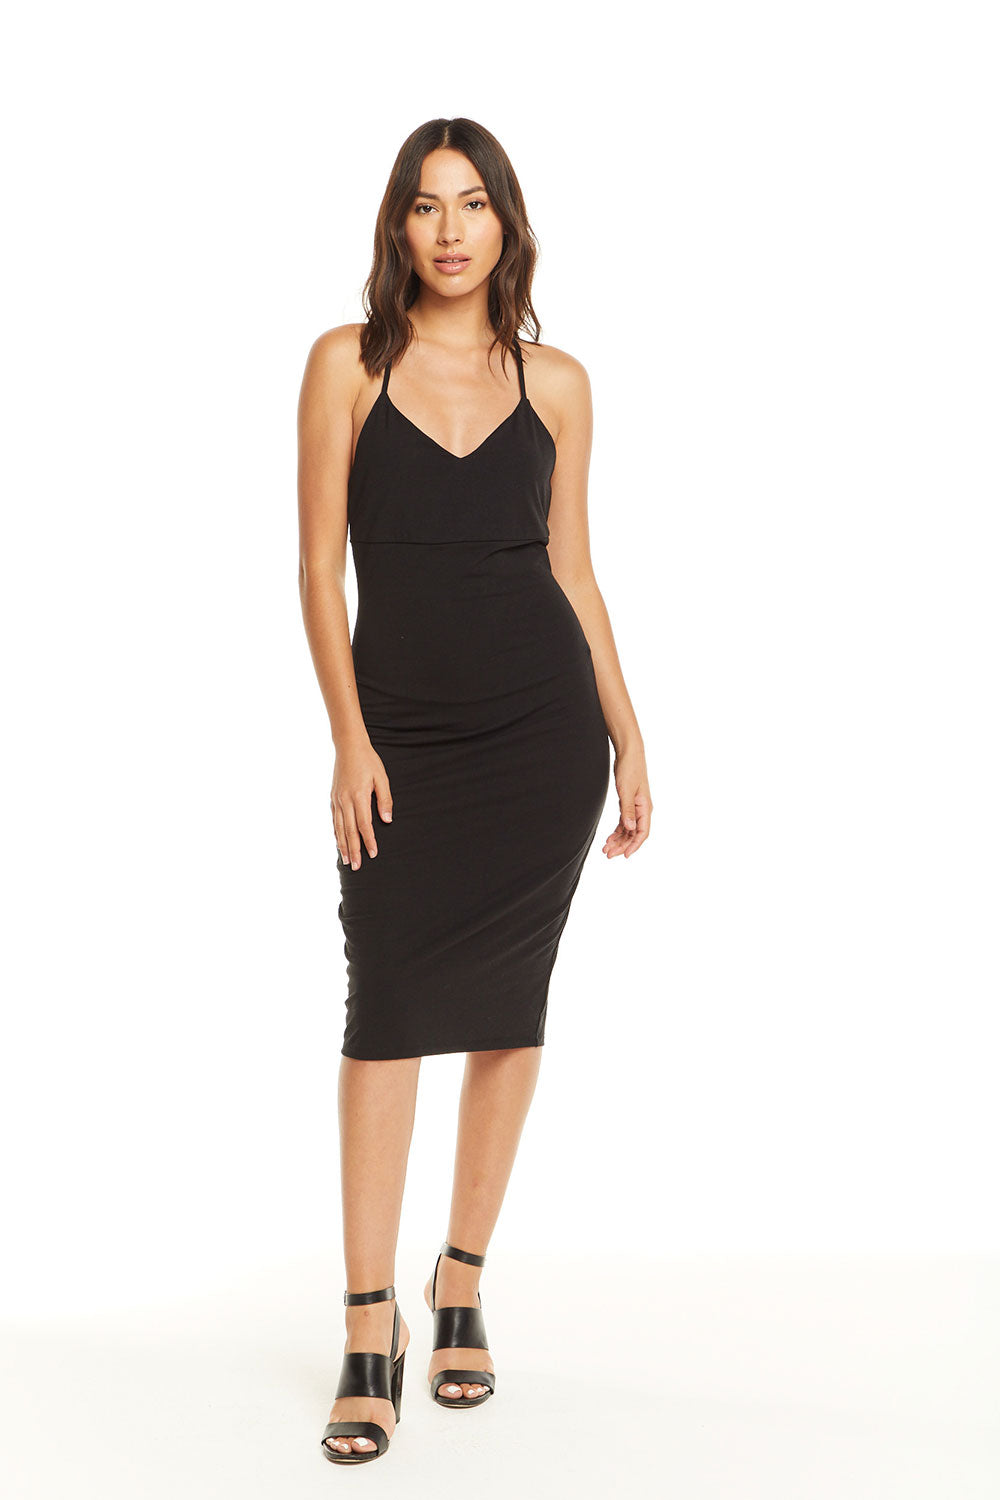 Quadrablend T-Back Sweetheart Bodycon Midi Dress WOMENS chaserbrand4.myshopify.com